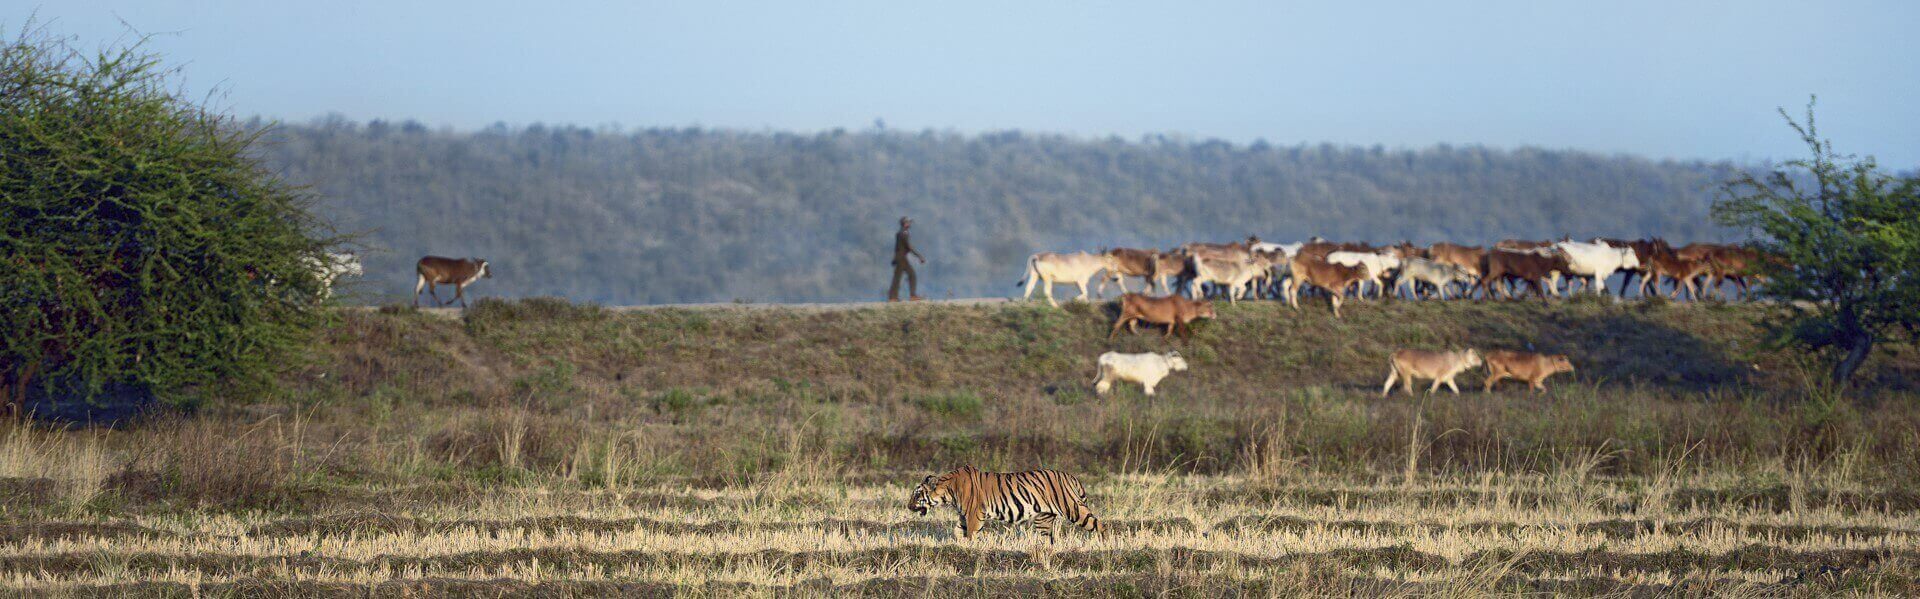 Tiger and cattle Tadoba